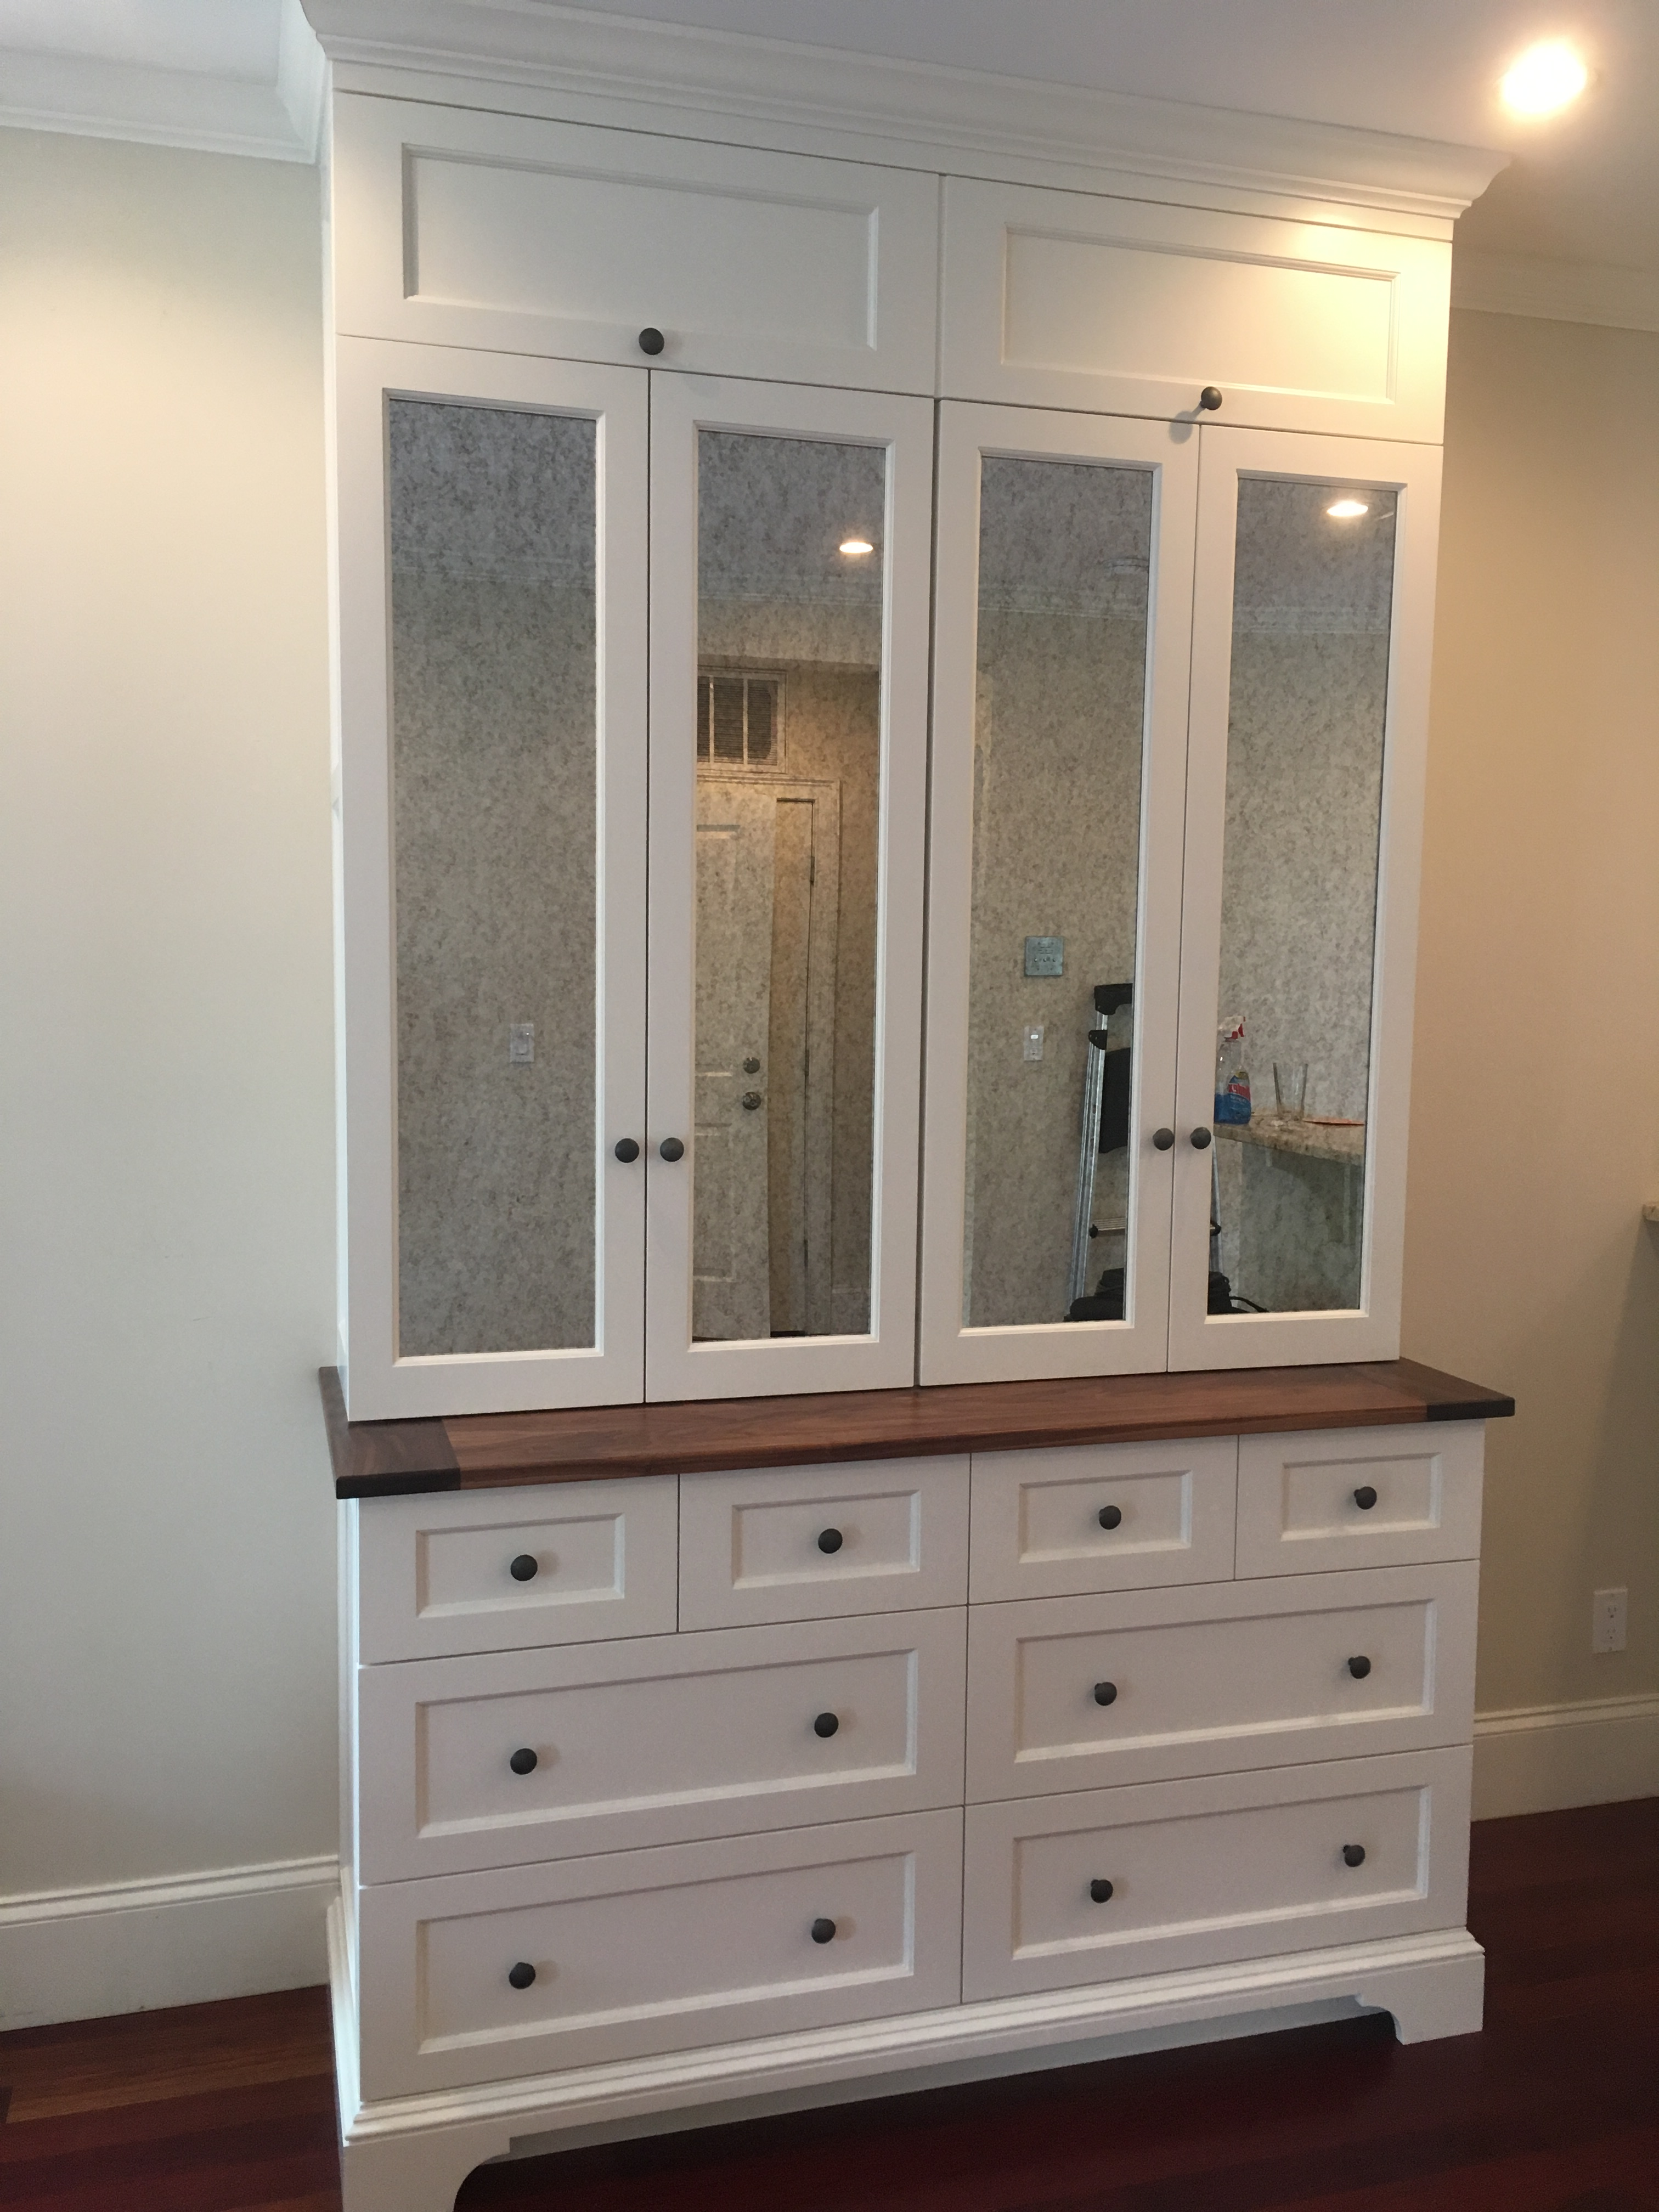 Built In Entertainment Center Groton Ma